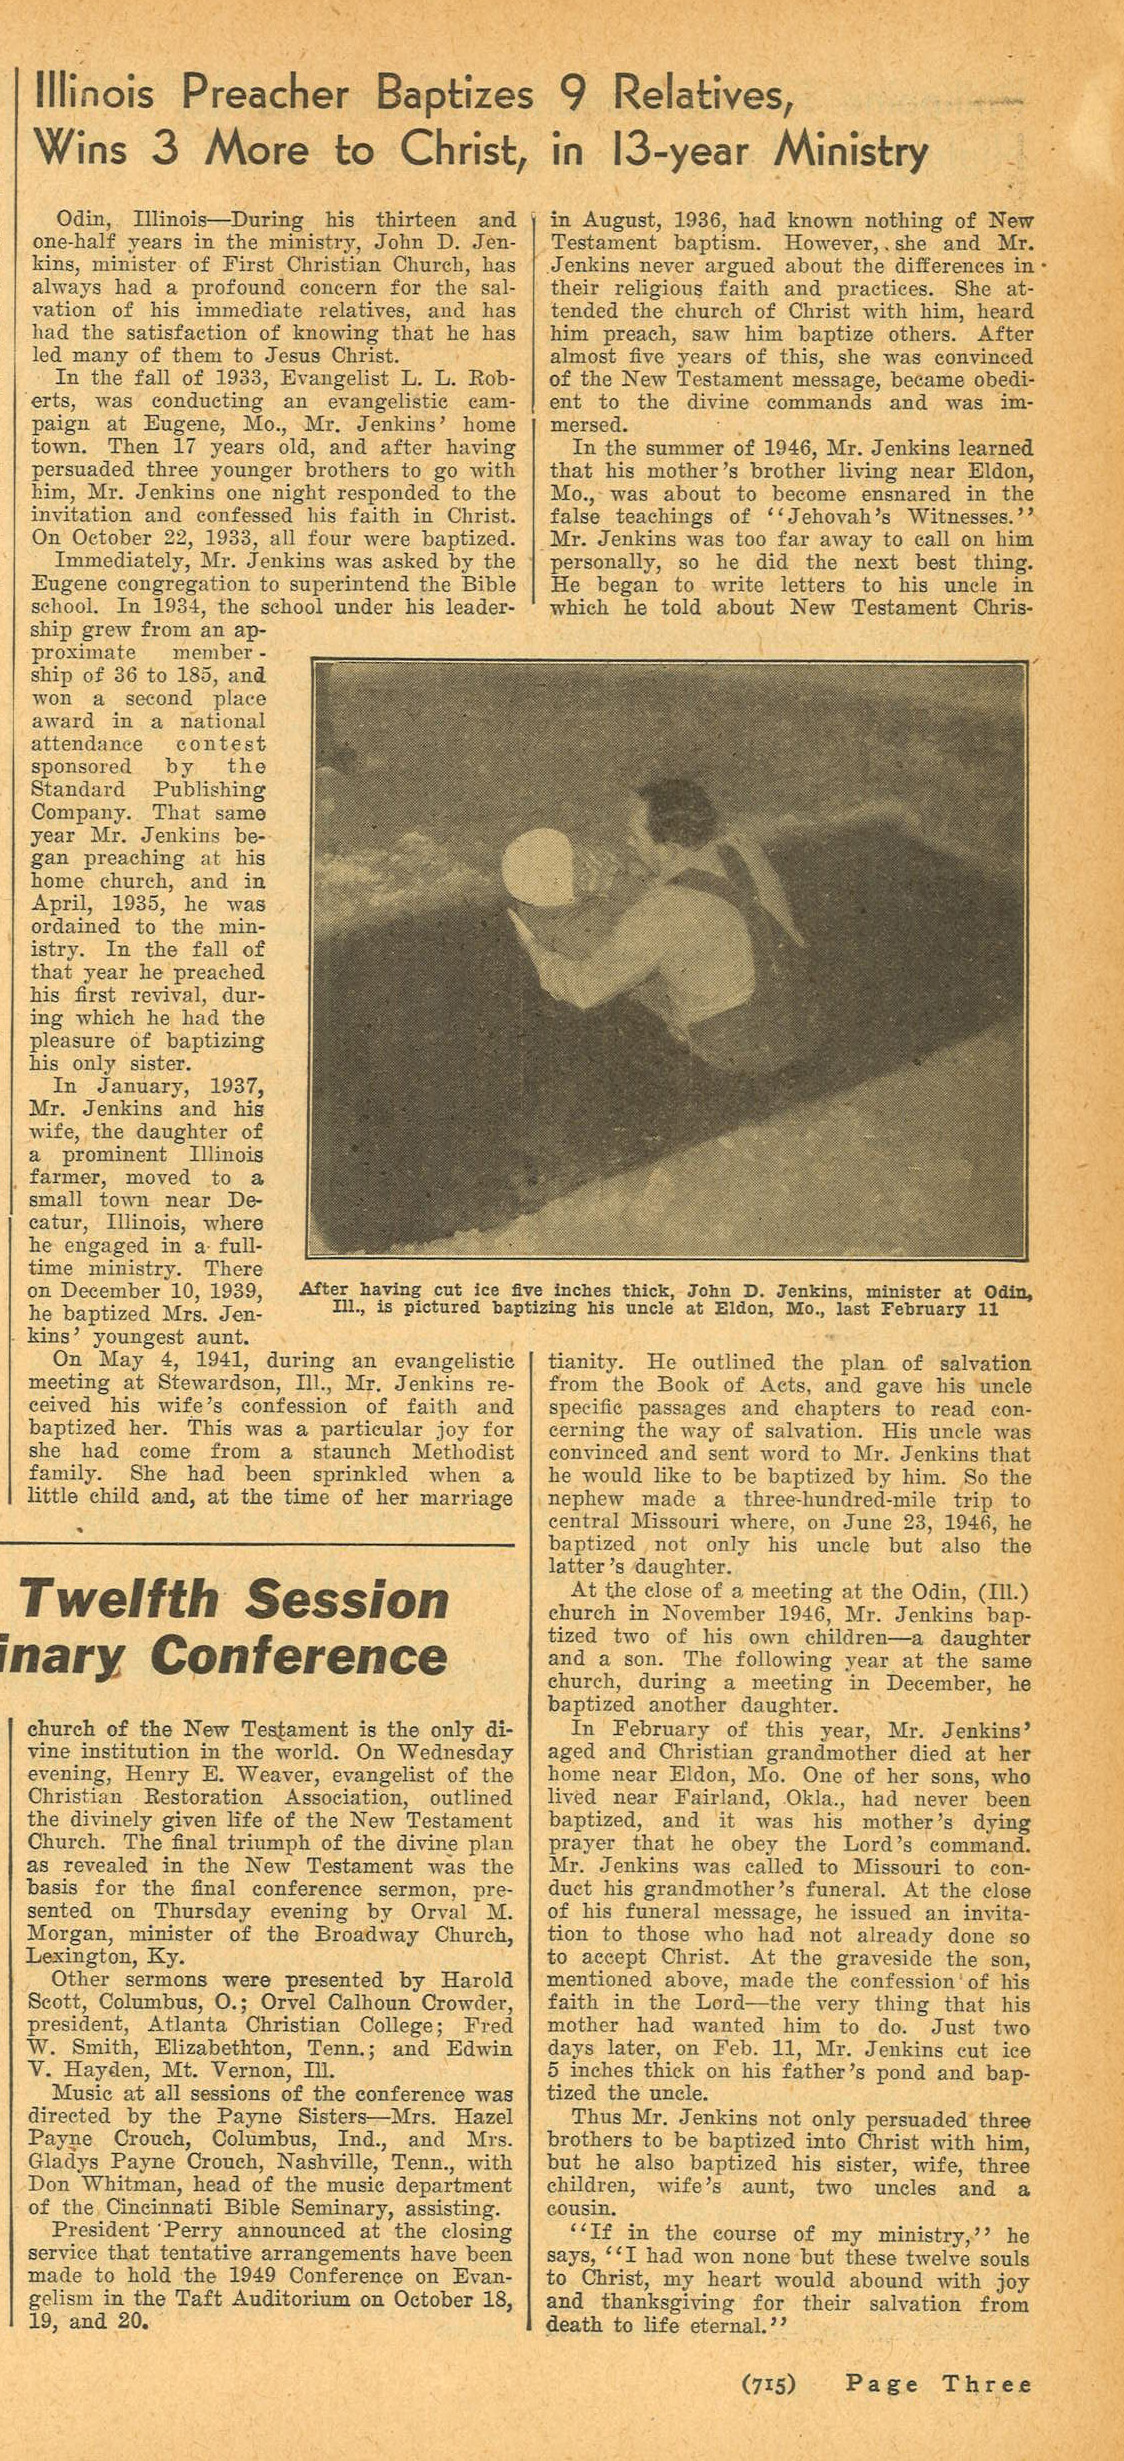 Baptism in ice, Christian Standard, October 30, 1948, p. 715